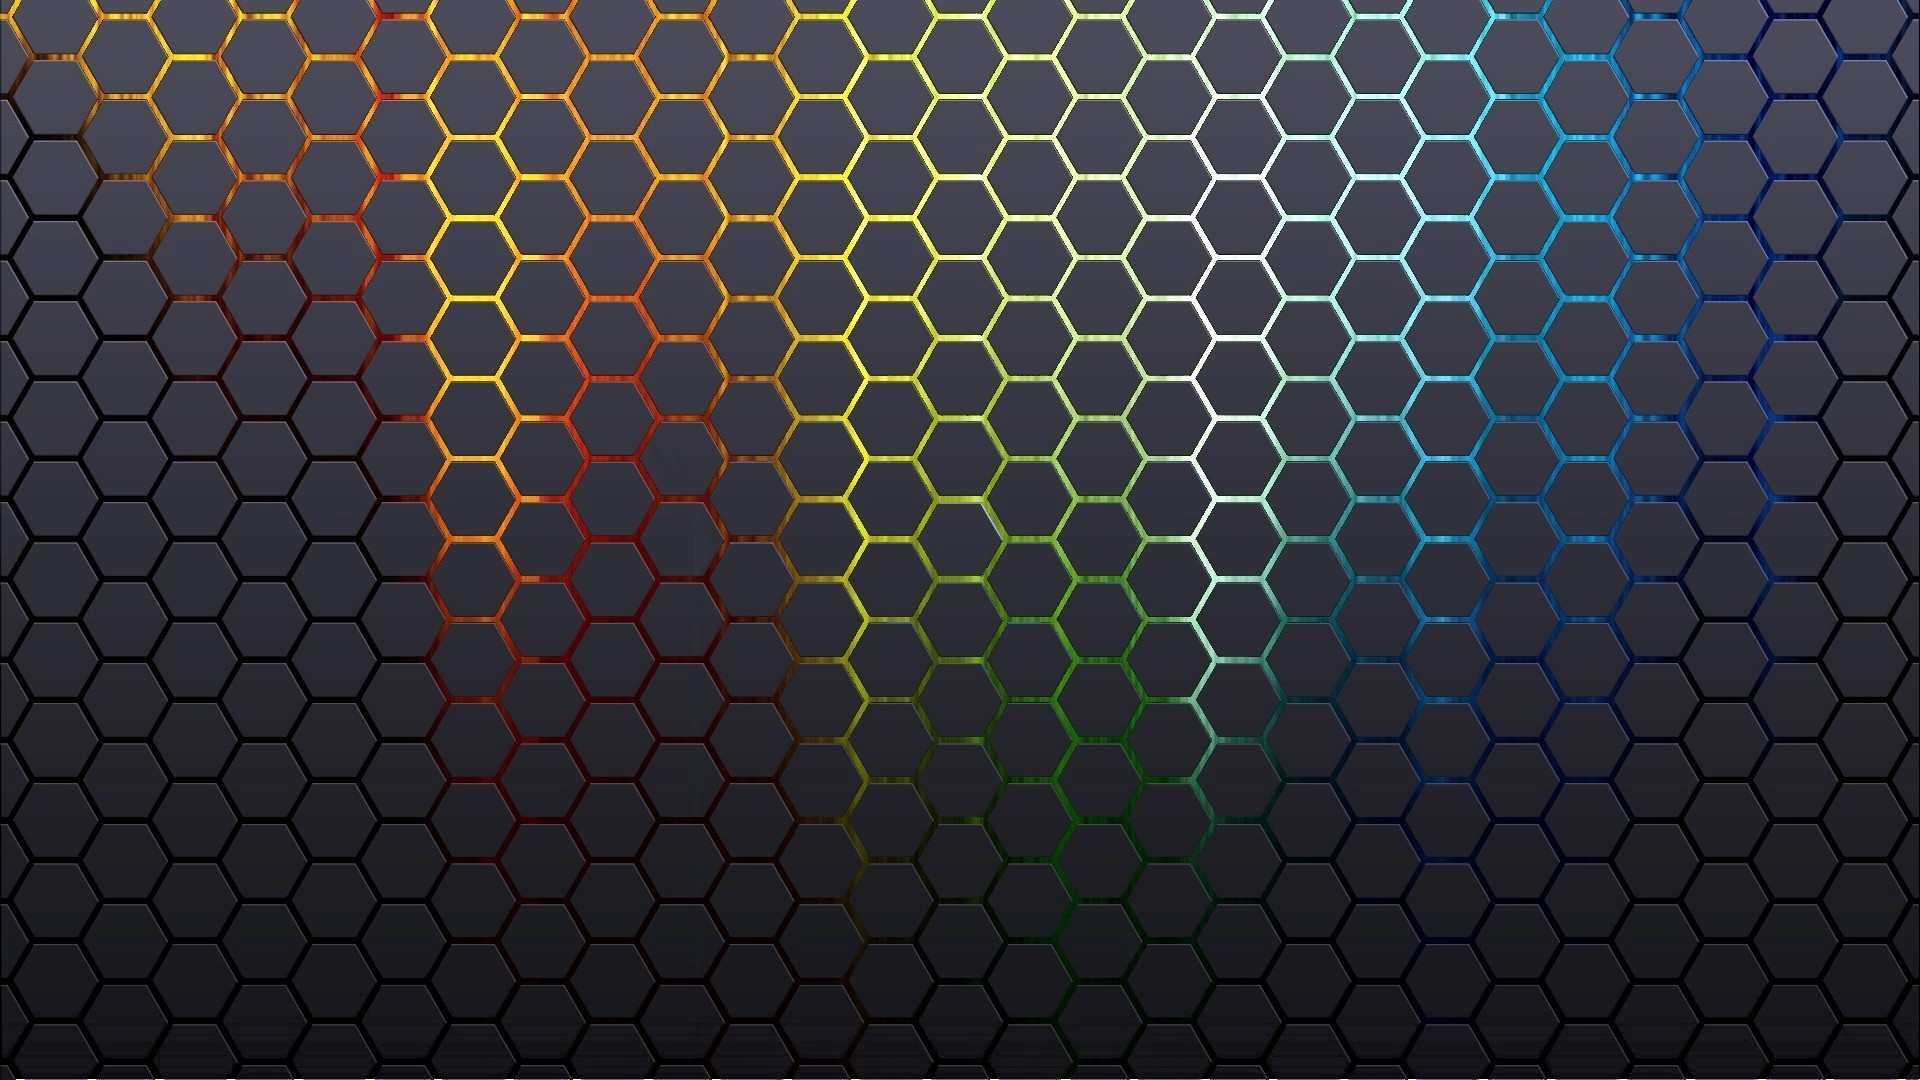 Res: 1920x1080, Hexagons Textures like Honeycomb